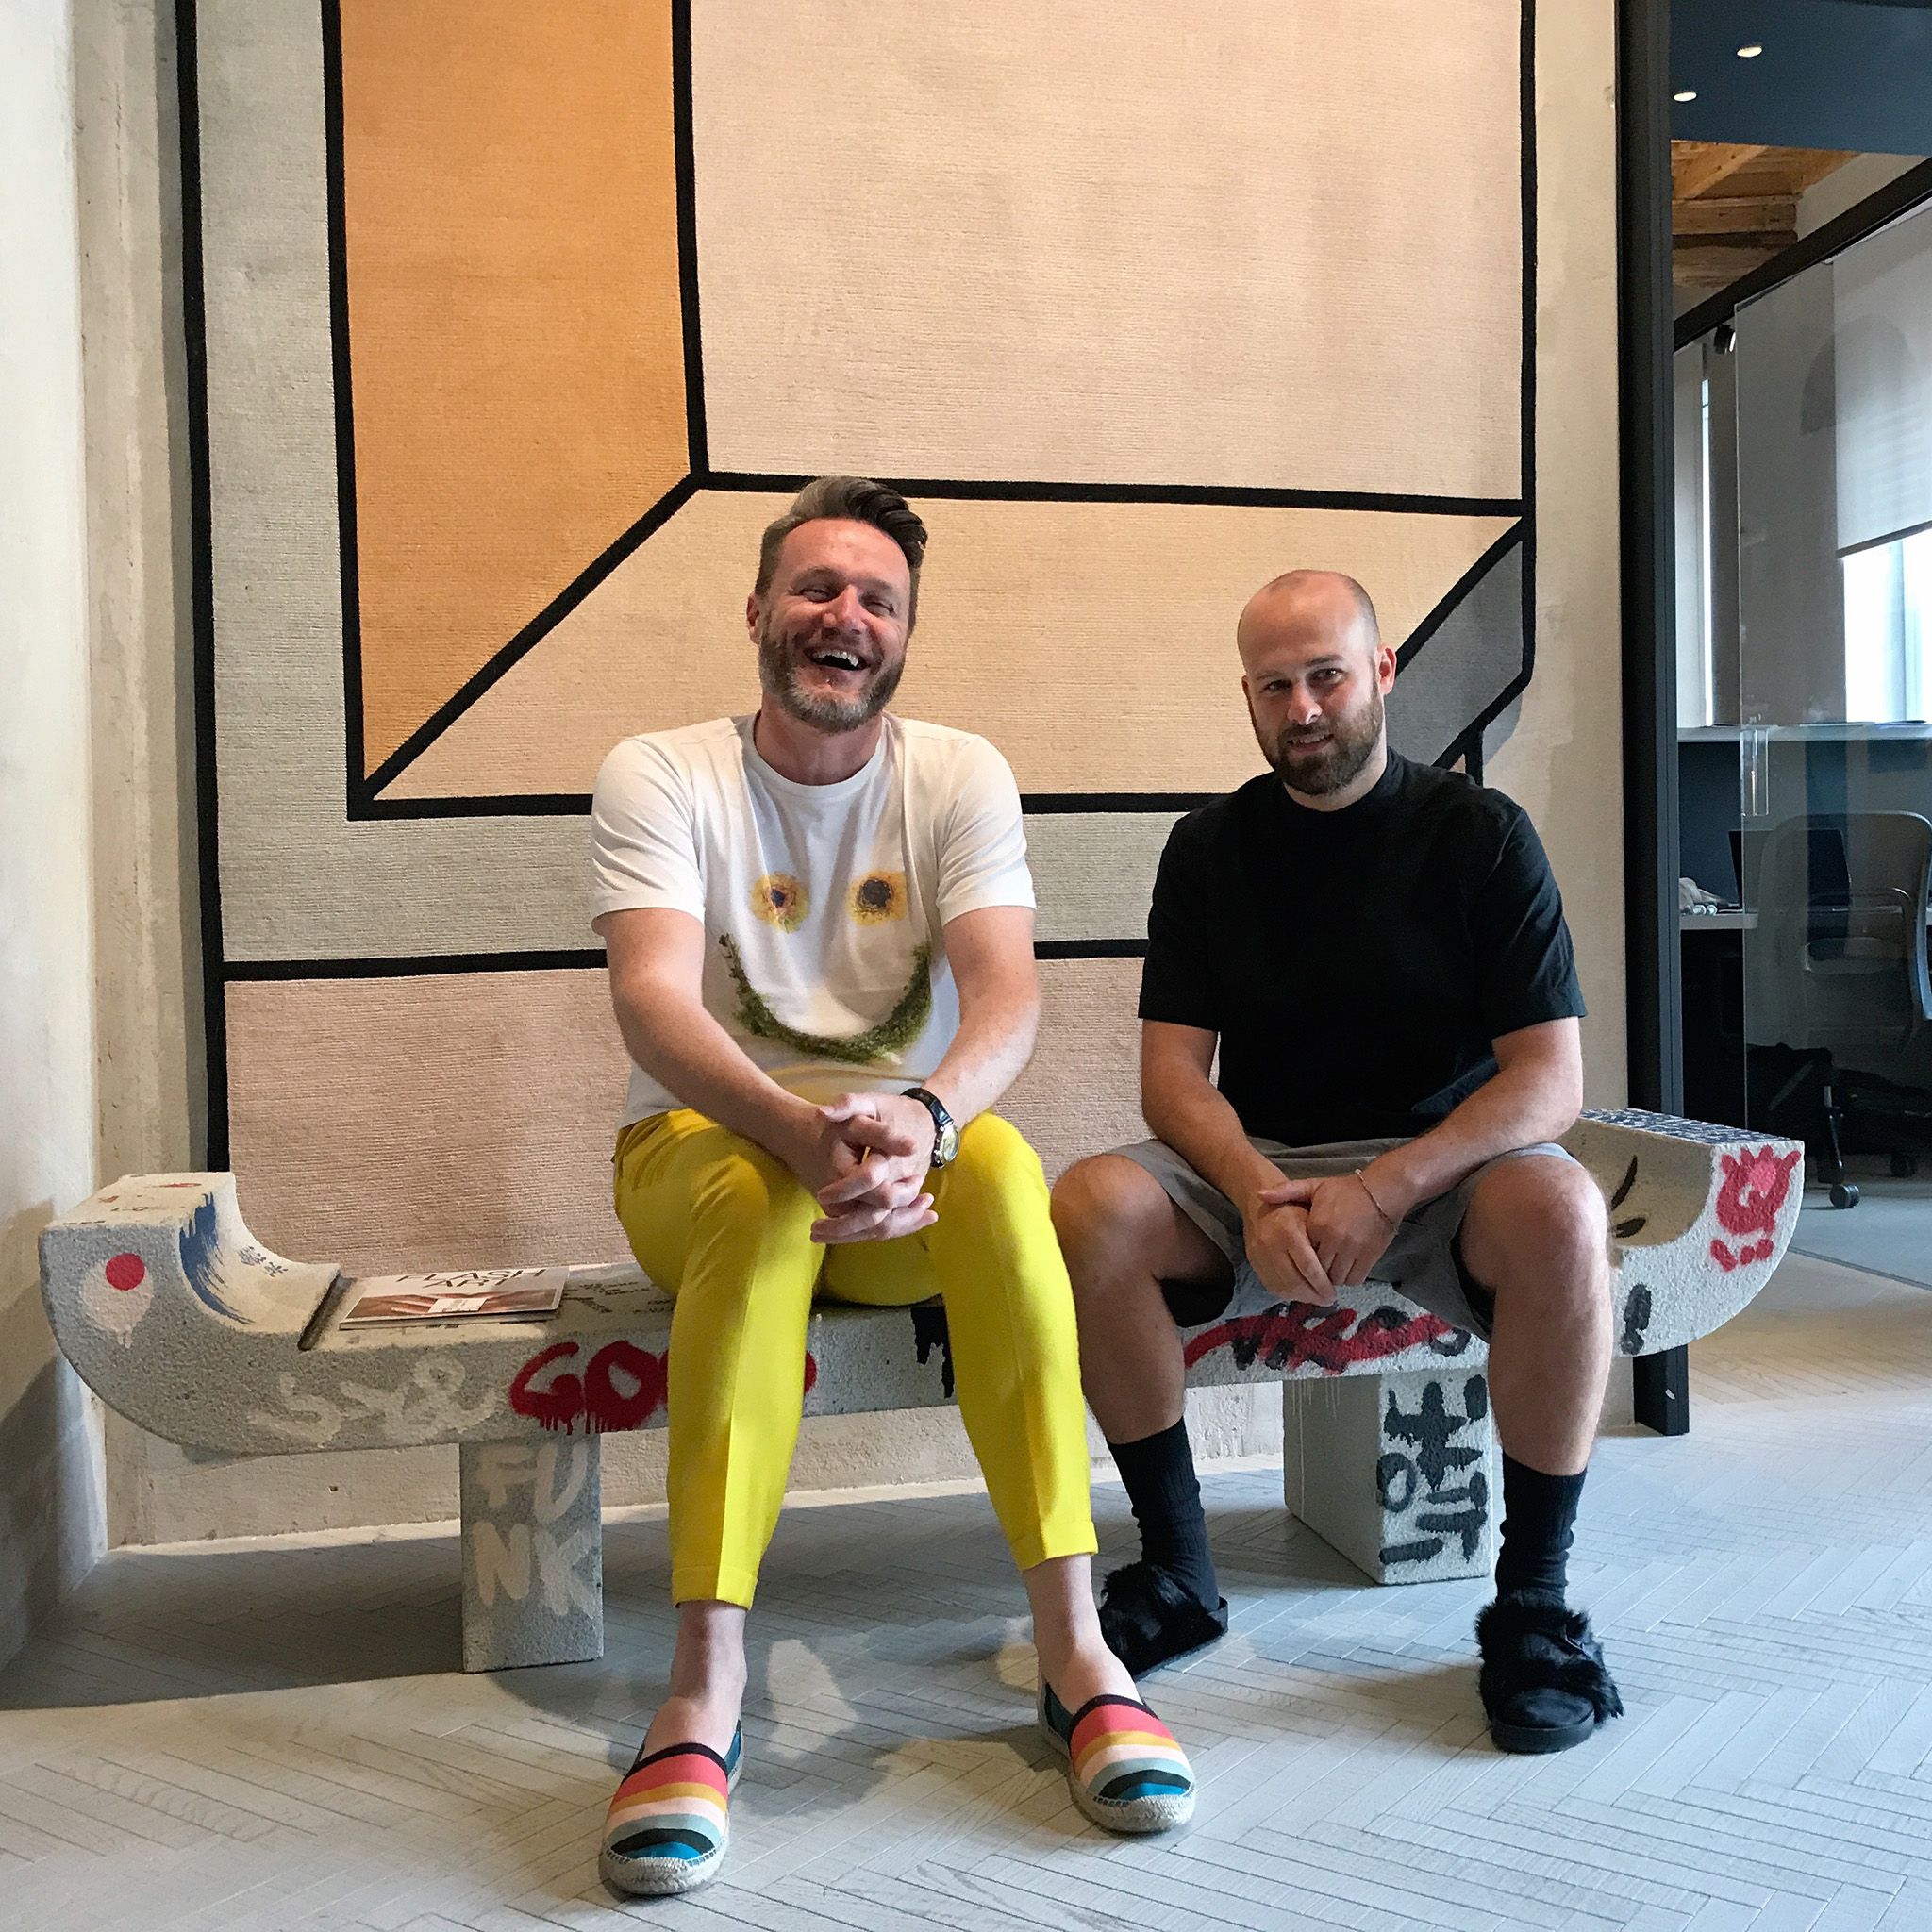 Fabrizio Cantoni (left), Managing Partner, cc-tapis; Daniele Lora, Artistic Director, cc-tapis; shown on 14 July 2018 in the foyer of their firm's offices at the Piazza Santo Stefano, Milan, Italy. | Photograph by The Ruggist.